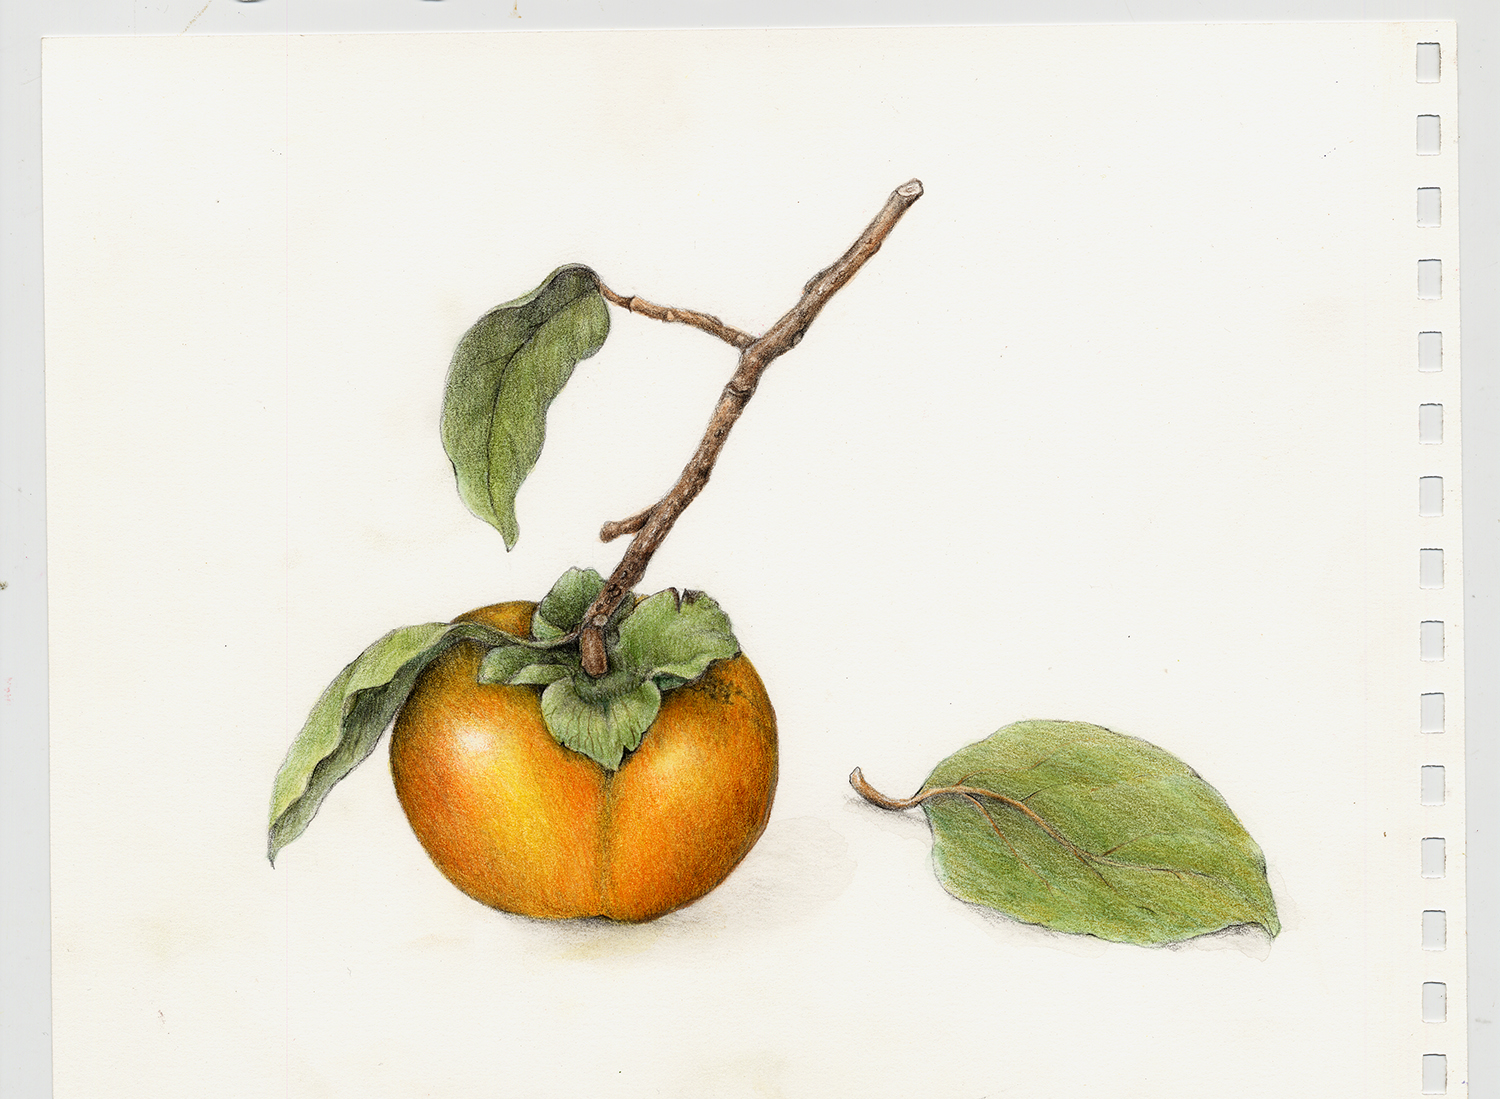 Fruits  Vegetables Gallery Full  Botanical Artist